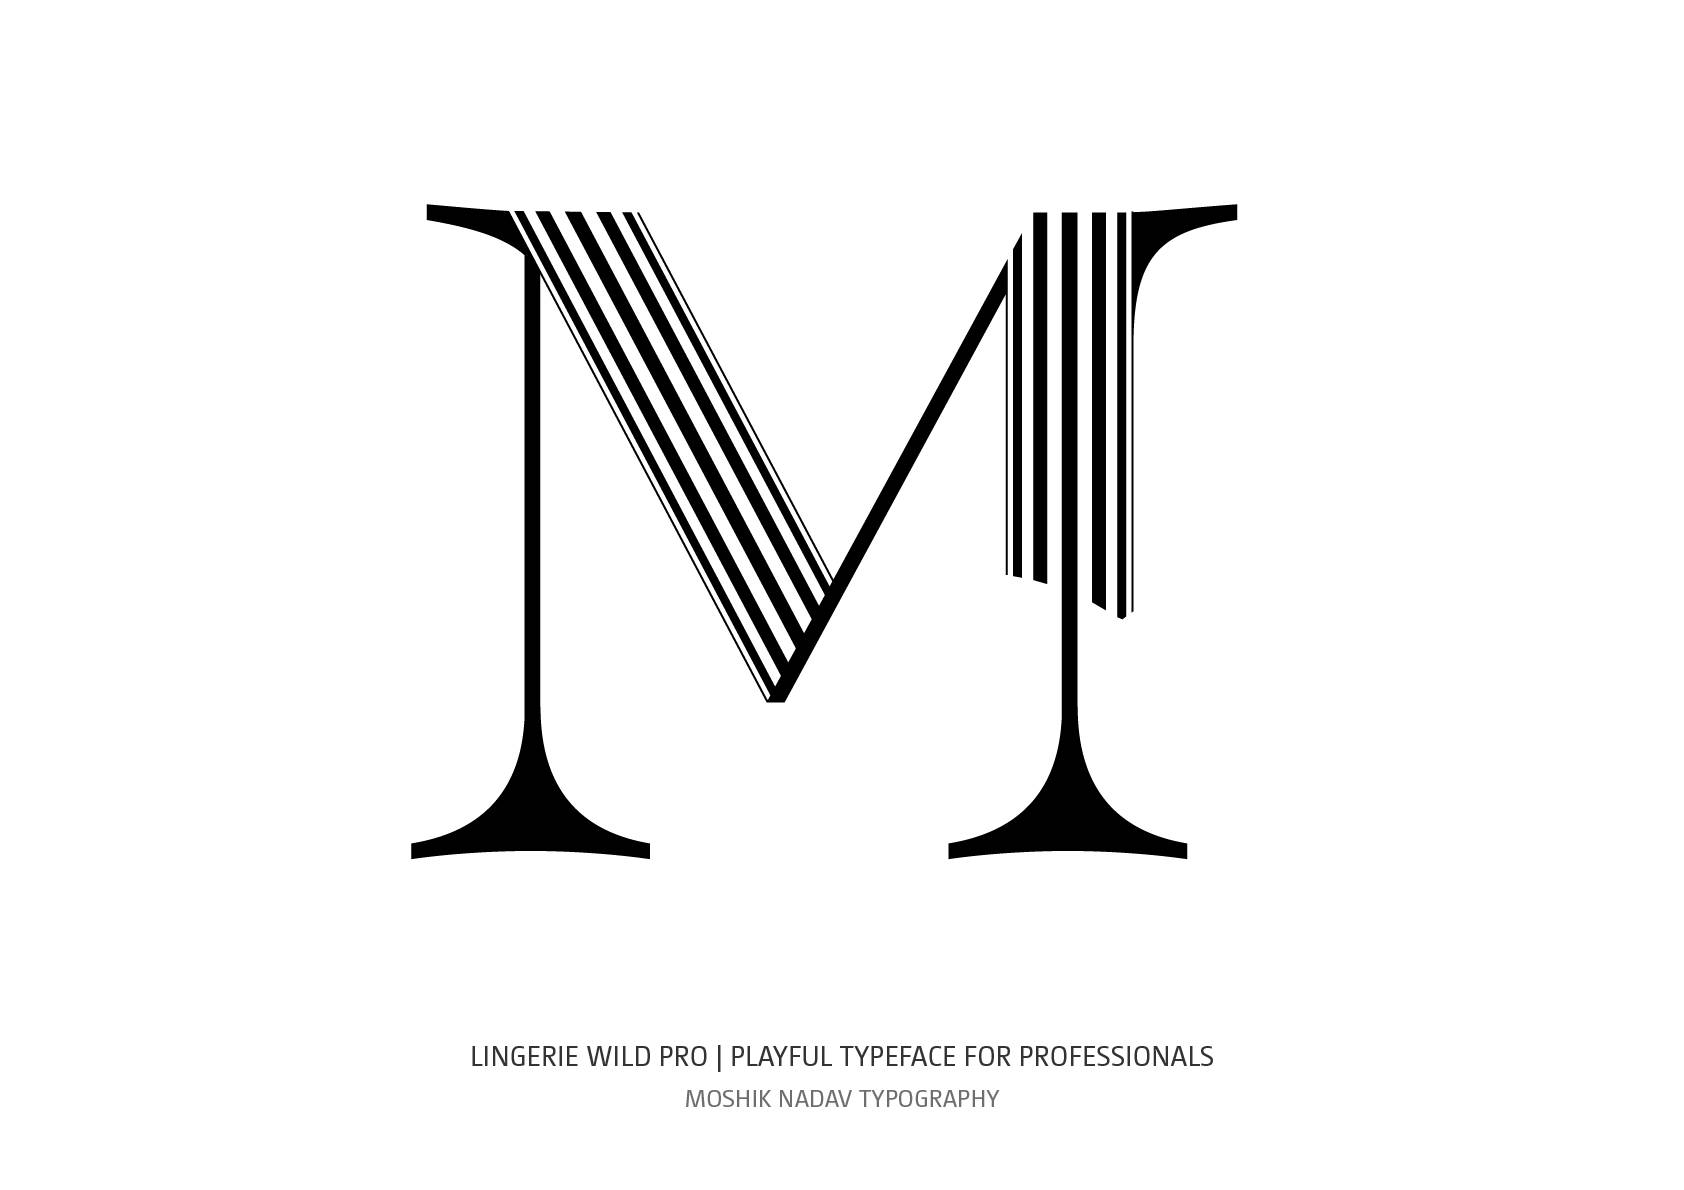 Super sexy uppercase M designed by Moshik Nadav Fashion Typography